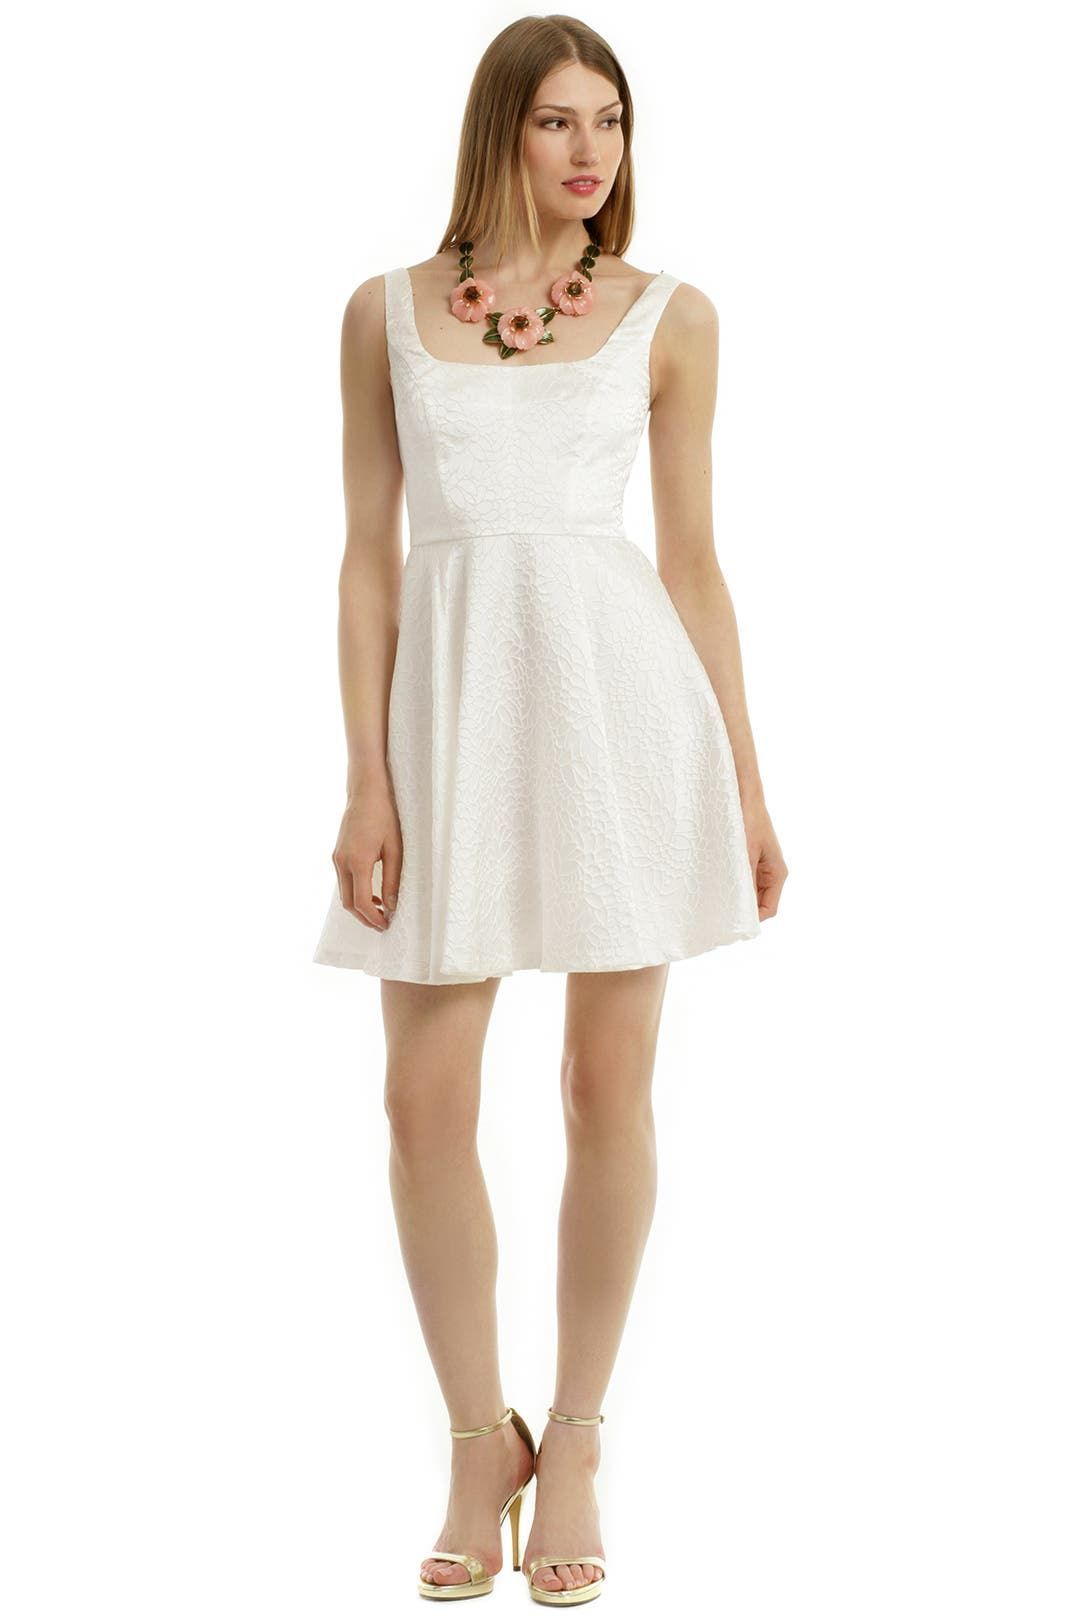 White Roses Are Forever Dress by Jill Jill Stuart